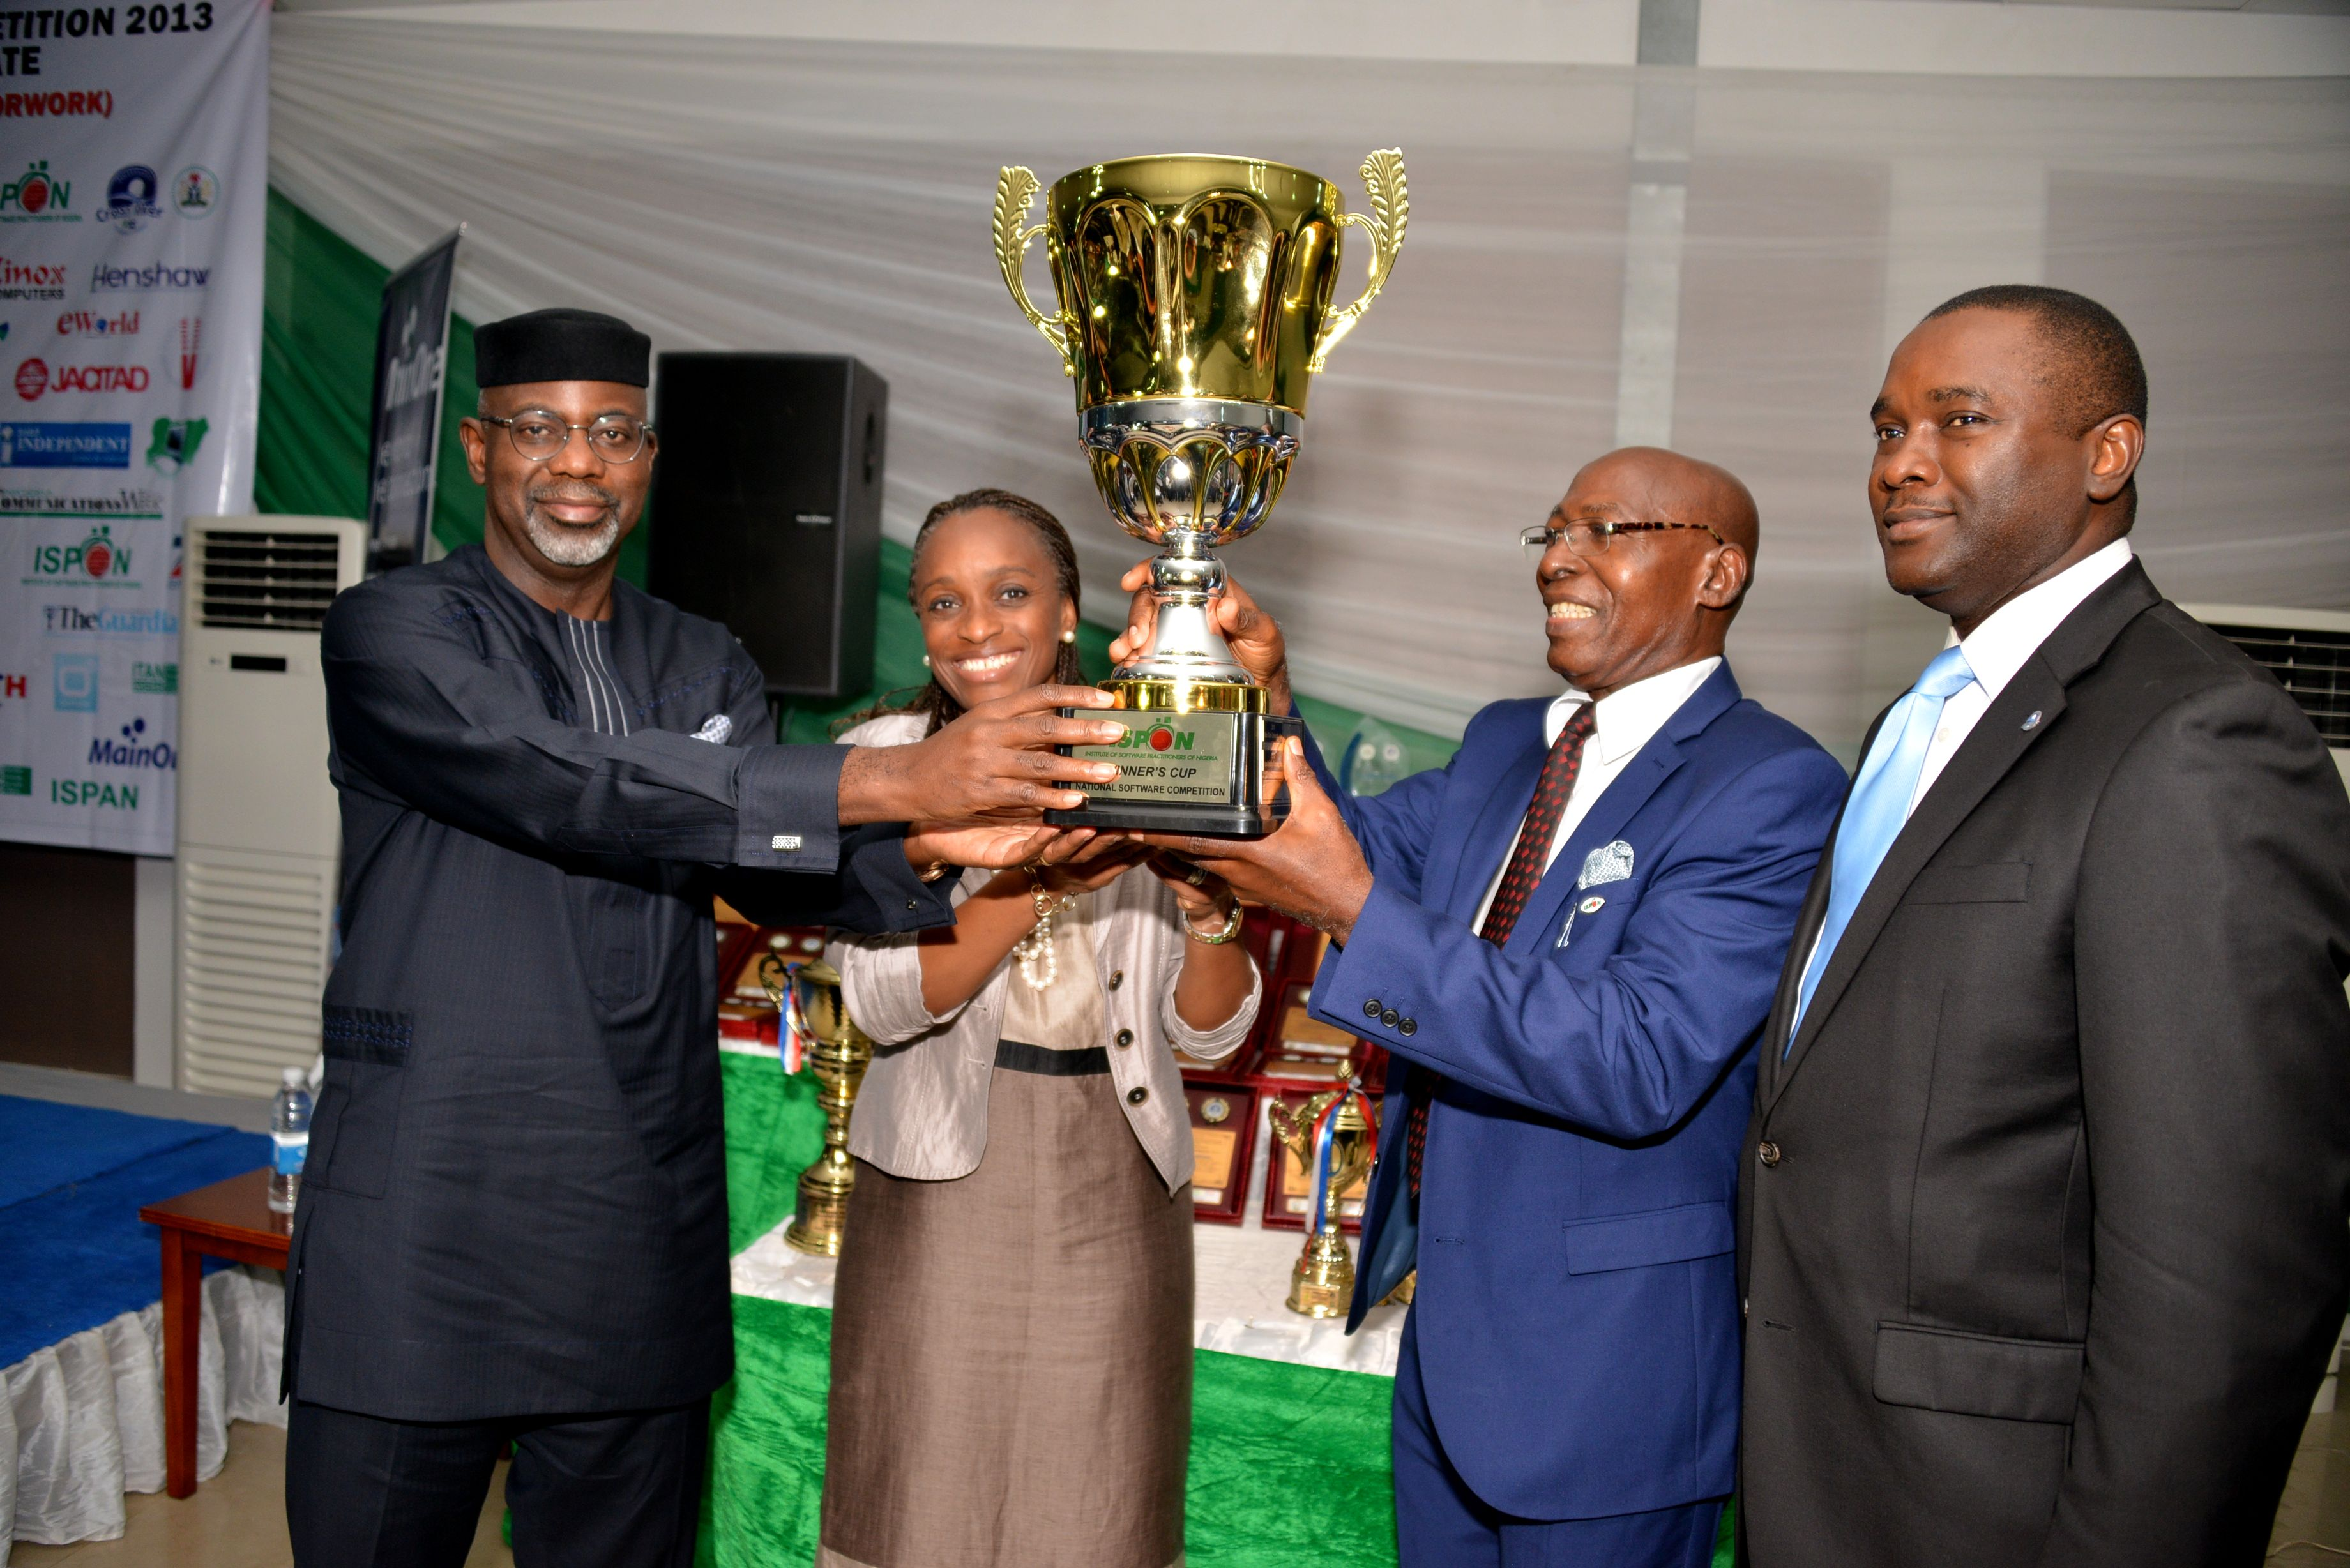 Cross River River Governor, Senator Liyel Imoke receiving a trophy as the ICT Governor of the Year from the President/Chairman of Council, ISPON, Mr. Chris Uwaje(2nd left),assisted by the Honorable minister for ICT, Mrs. Omobola Johnson while Mr. Odo Effiong SA to Imoke on ICT devt watched during the 2013 Institute's National Software Conference & Competition at Tinapa, Calabar